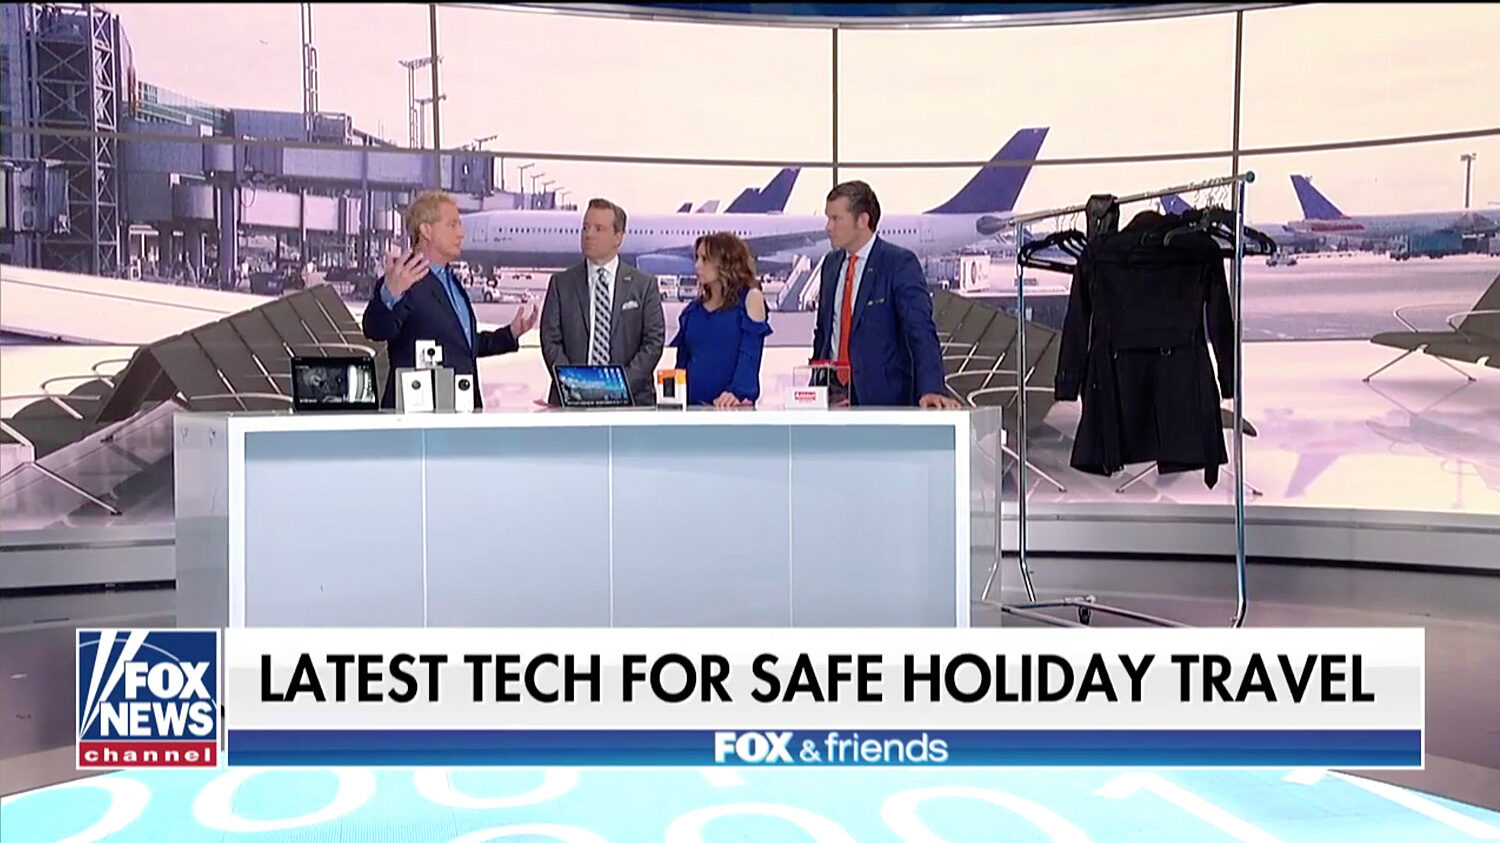 How to make your holiday travels safer with tech